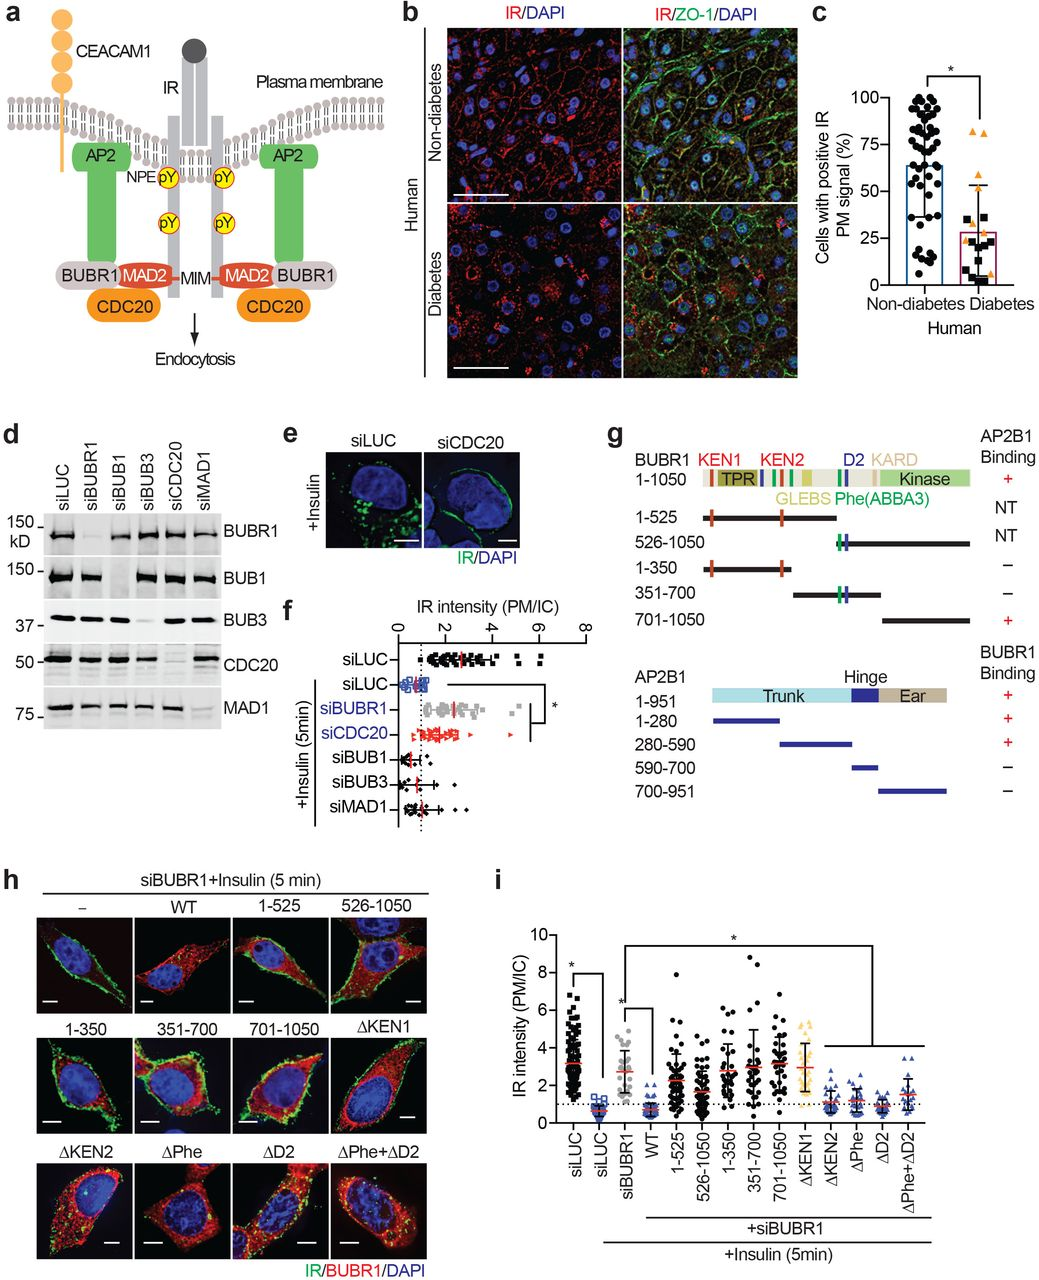 Mitotic Regulators and the SHP2-MAPK Pathway Promote Insulin